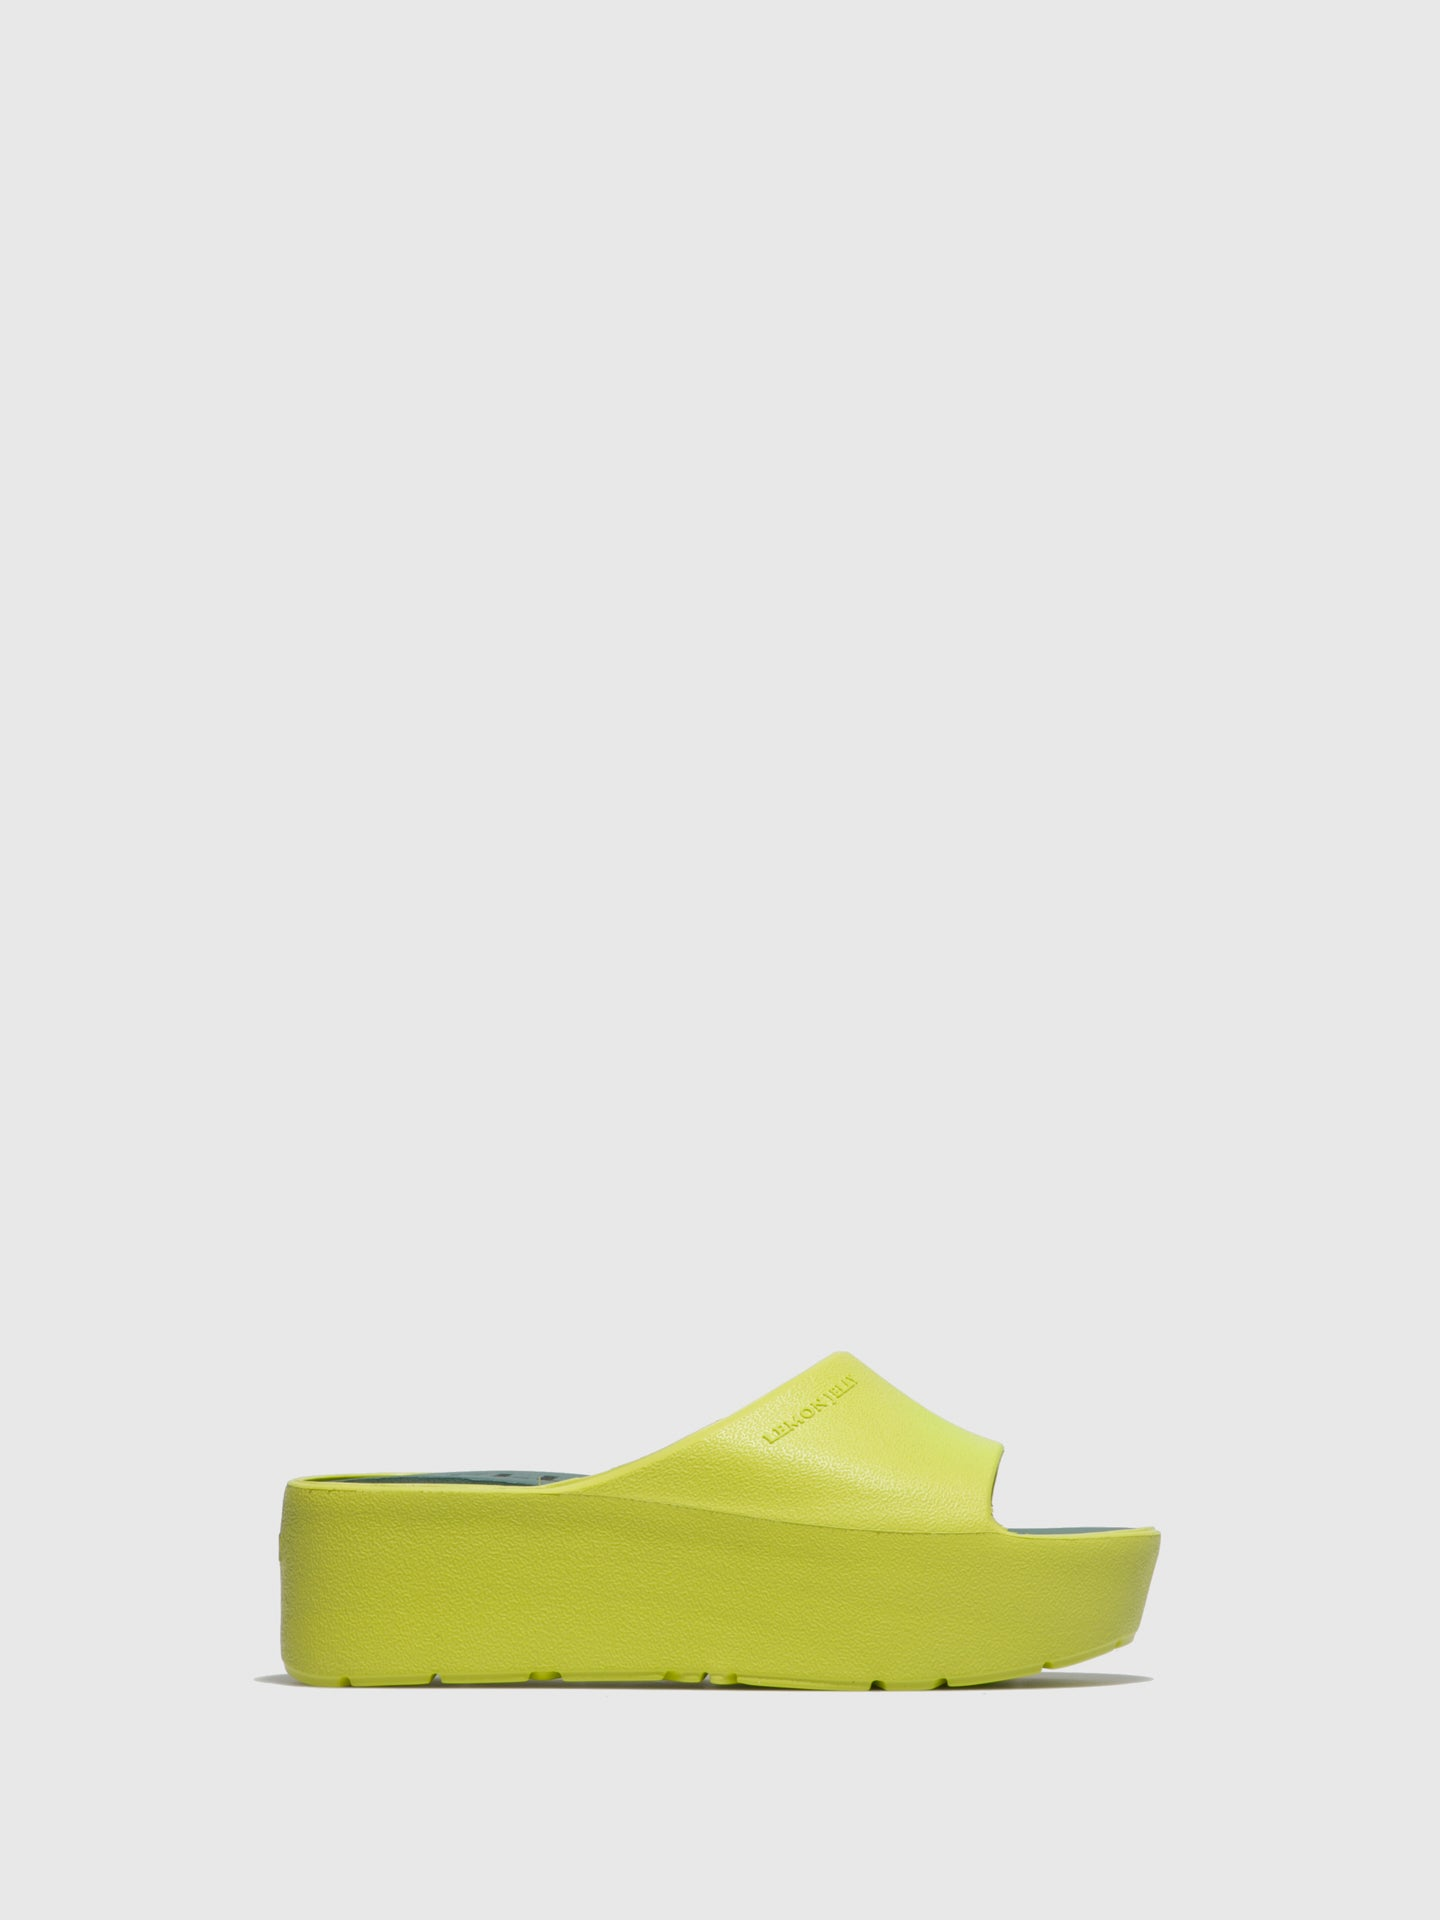 Lemon Jelly Green Platform Mules